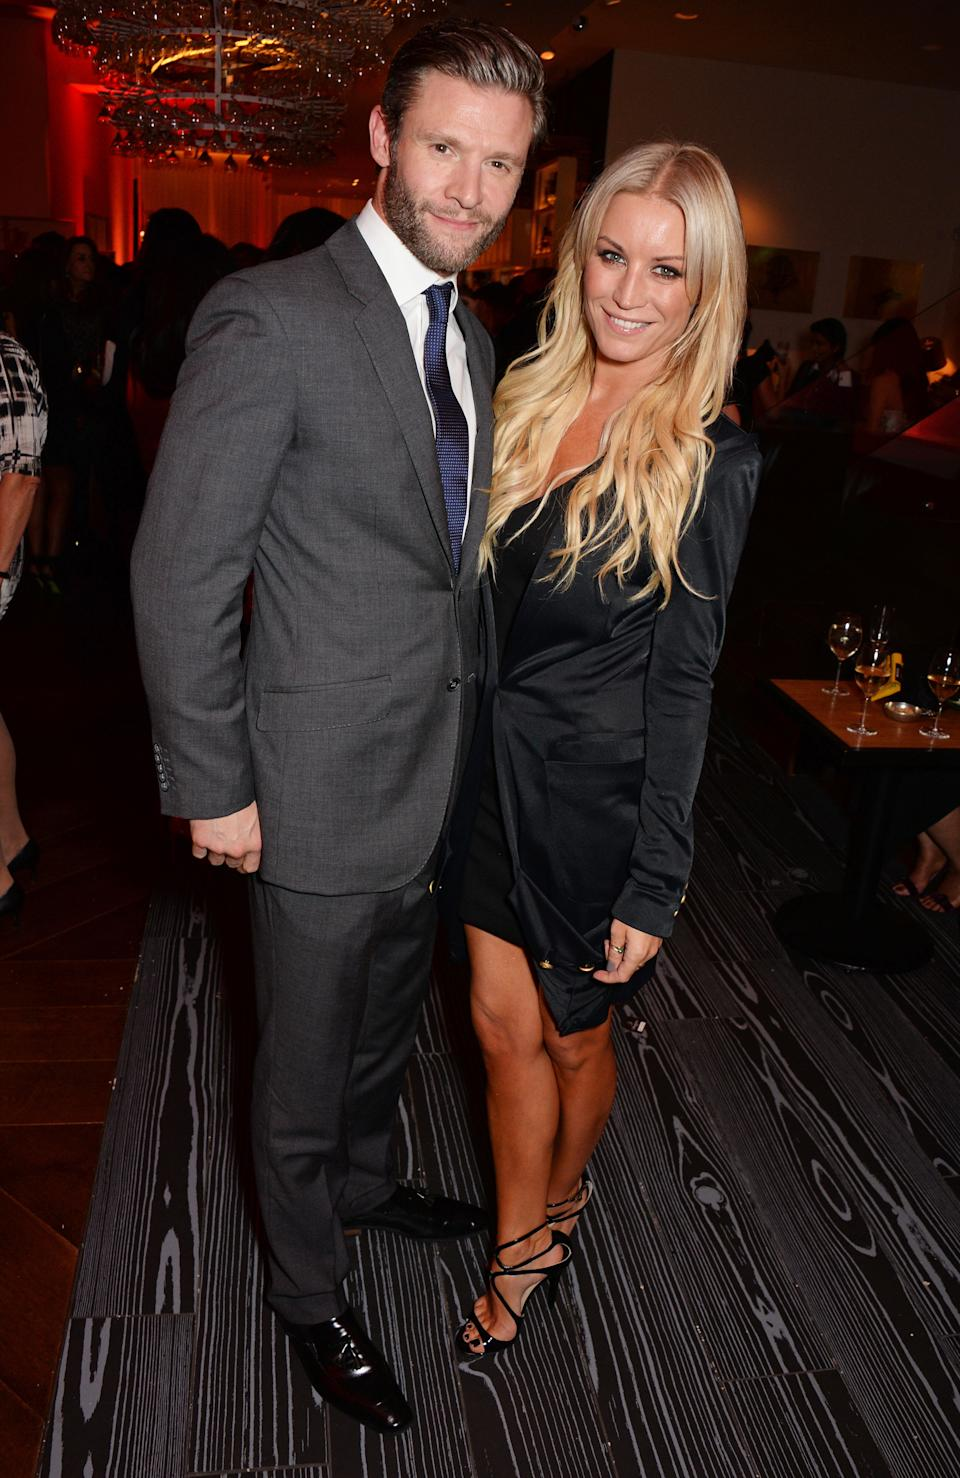 LONDON, ENGLAND - OCTOBER 14:  Eddie Boxshall (L) and Denise Van Outen attend a party hosted by Jonathan Shalit to celebrate his OBE at Avenue on October 14, 2014 in London, England.  (Photo by David M. Benett/Getty Images)